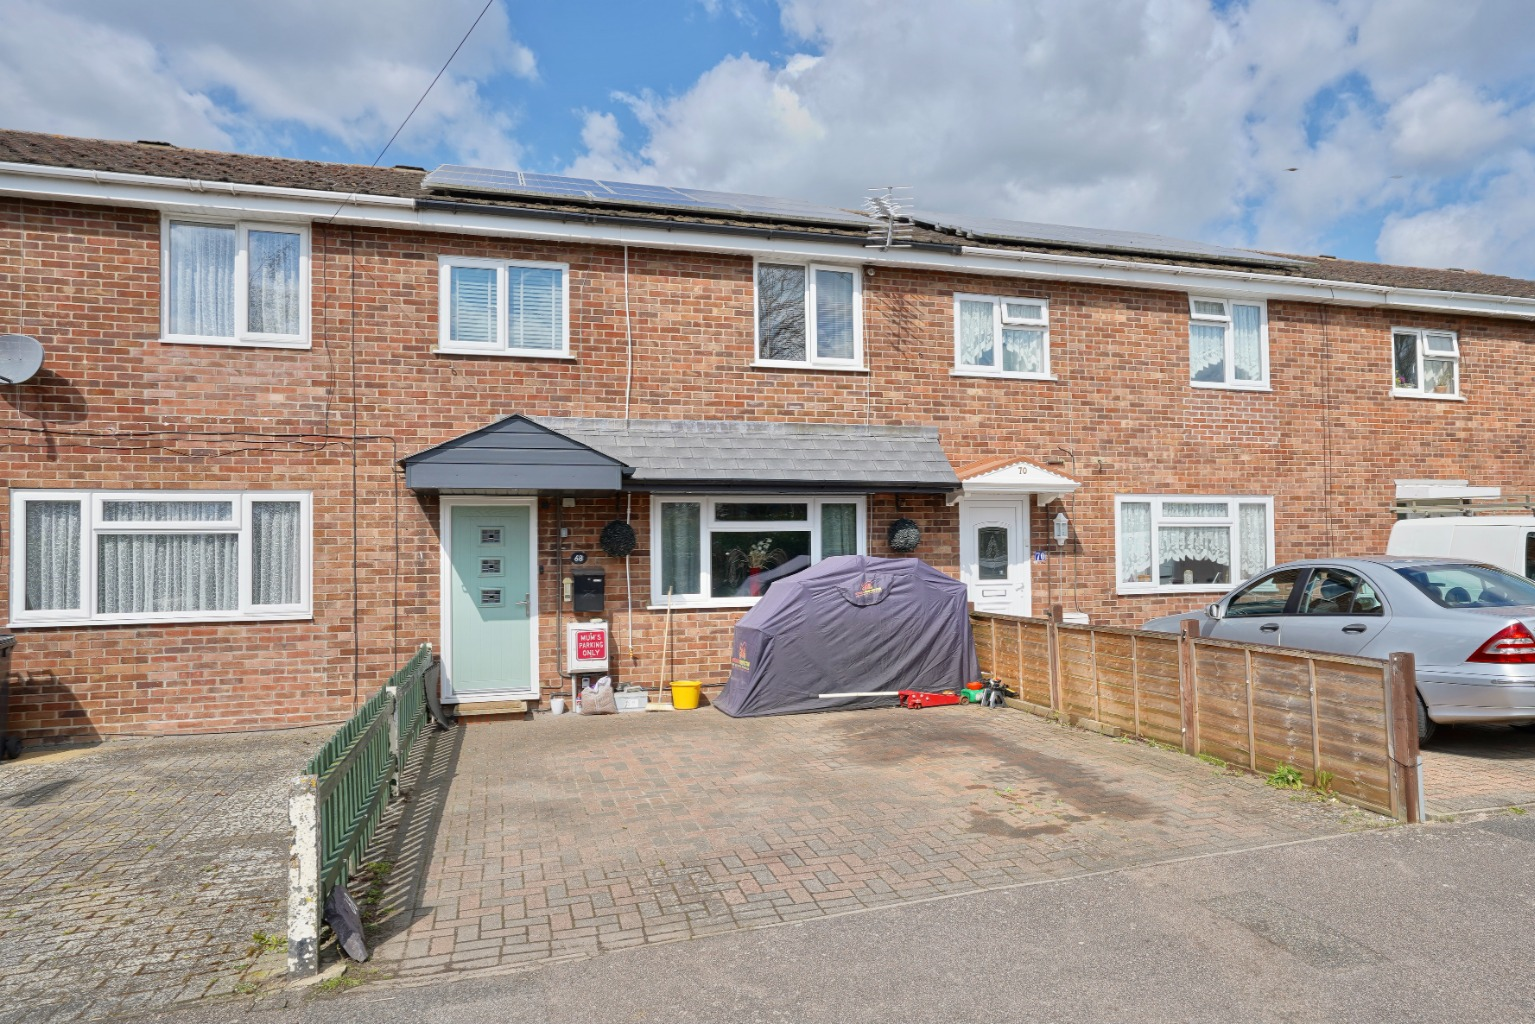 3 bed  for sale in Henbrook, St. Neots, PE19